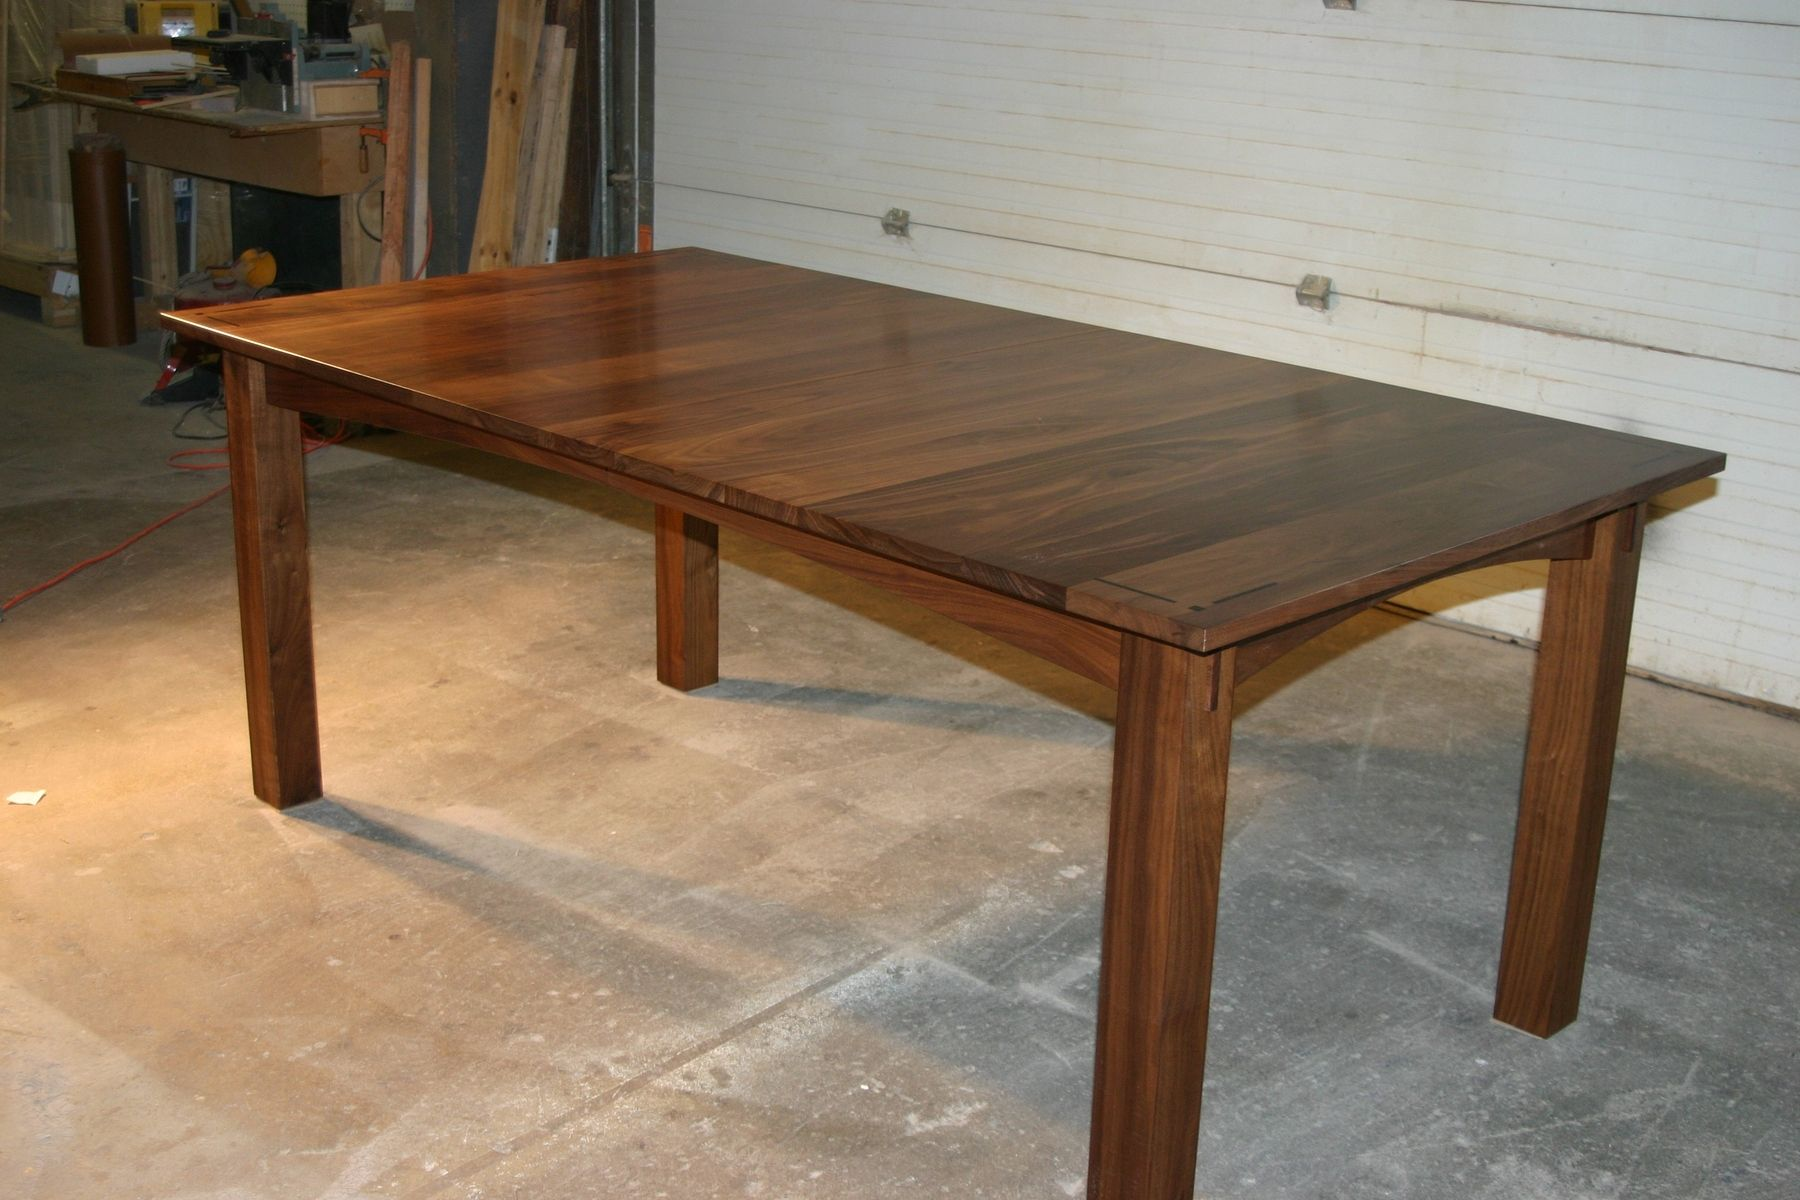 Handmade Walnut Dining Table by Canton Studio CustomMadecom : 839073475 from www.custommade.com size 1800 x 1200 jpeg 225kB